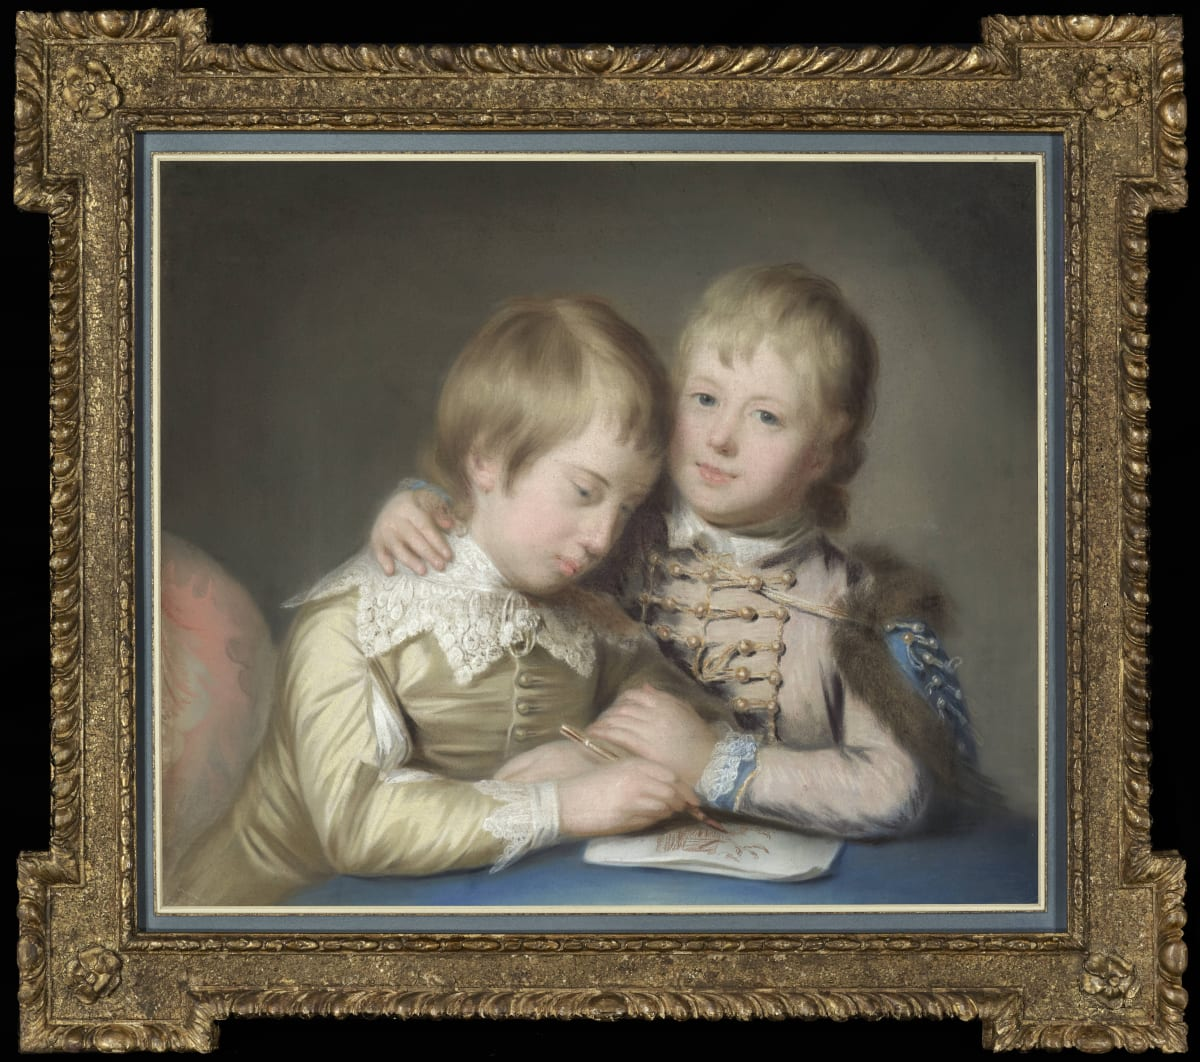 Katherine Read (1723 - 1778) George, later 2nd Marquess Townshend (1753 – 1811), and Lord John Townshend (1757 – 1833), as boys, circa 1764 Pastel on paper, laid on canvas 23 5/8 x 27 ½ in. (60 x 70 cm.)